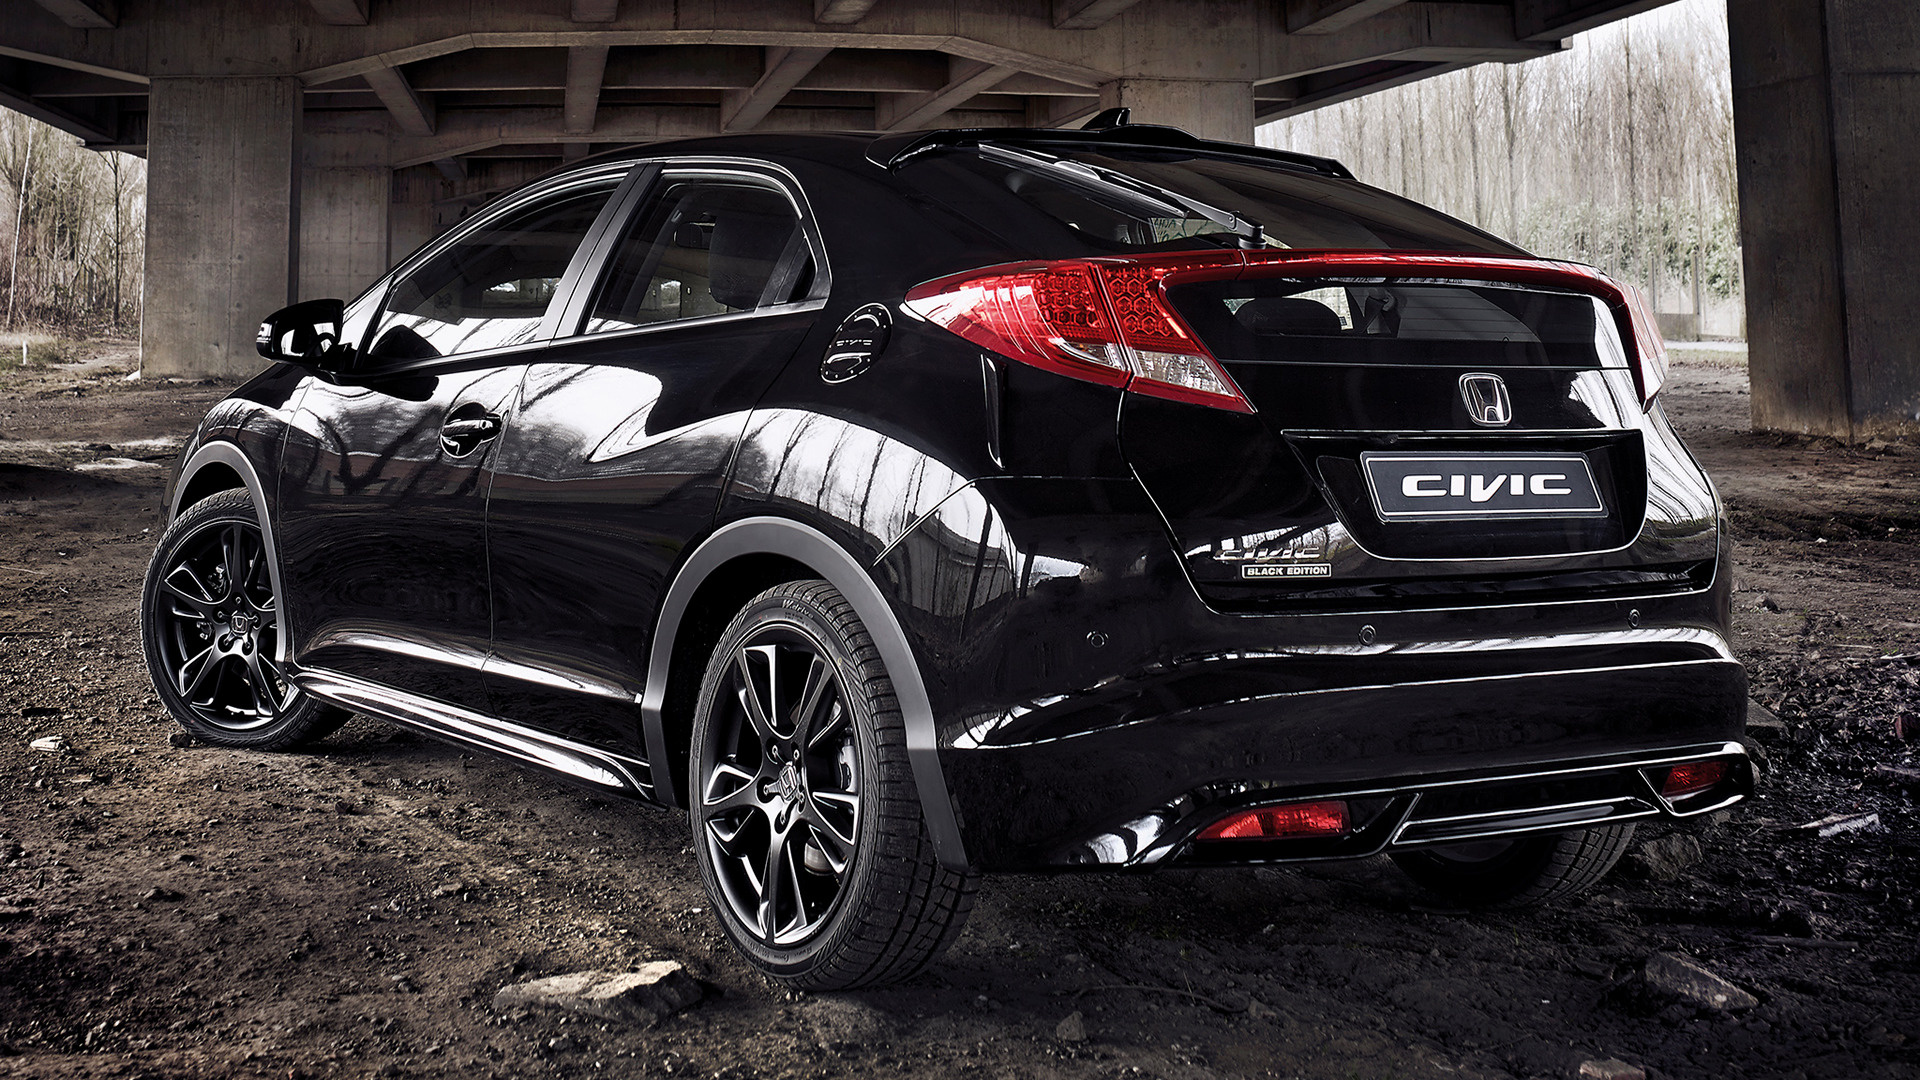 Honda Civic Black Edition 2014 Wallpapers And Hd Images